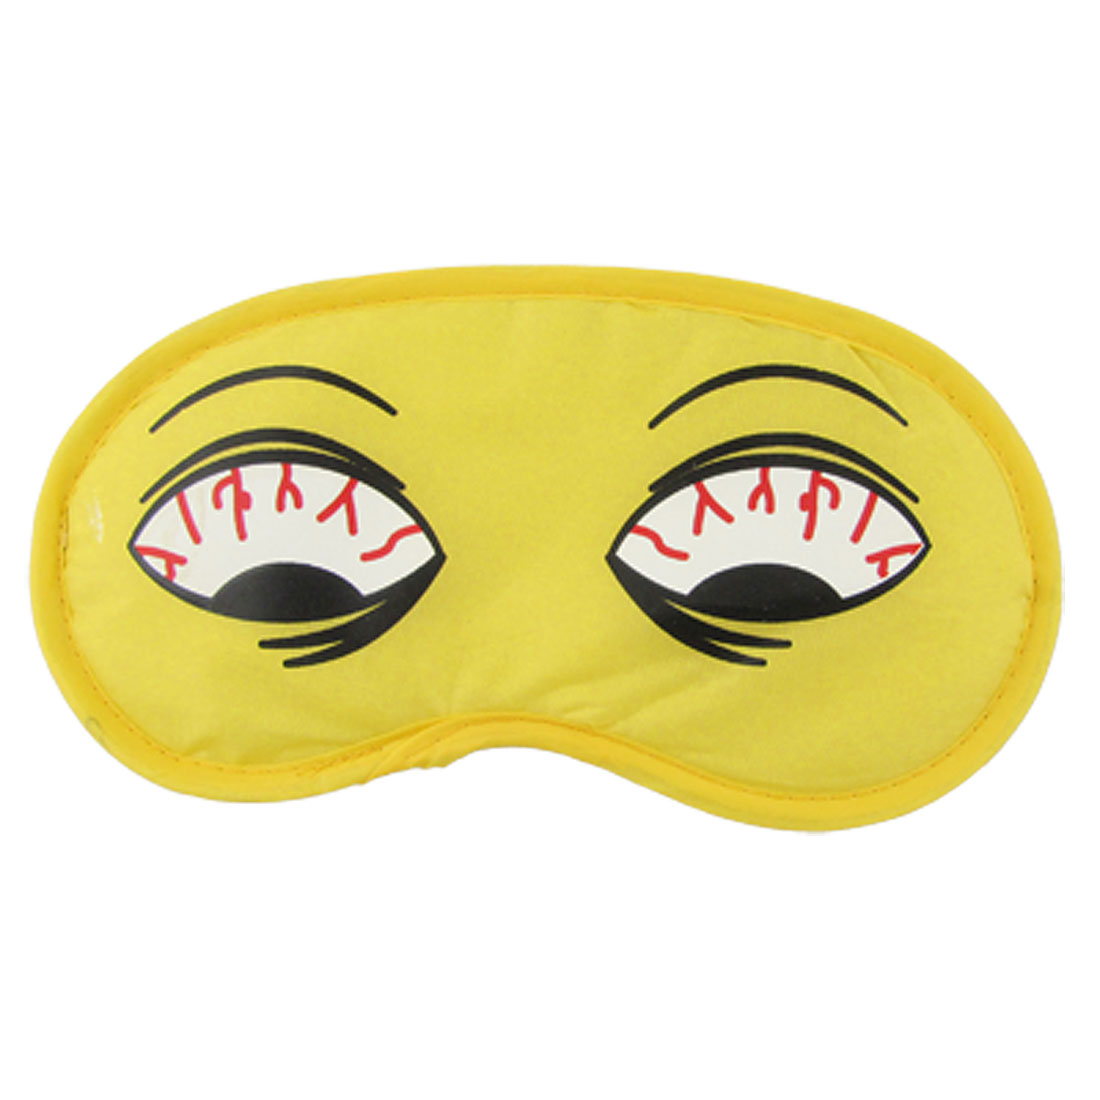 Elastic Strap Nylon Cartoon Sleeping Eye Mask Eyeshade Yellow